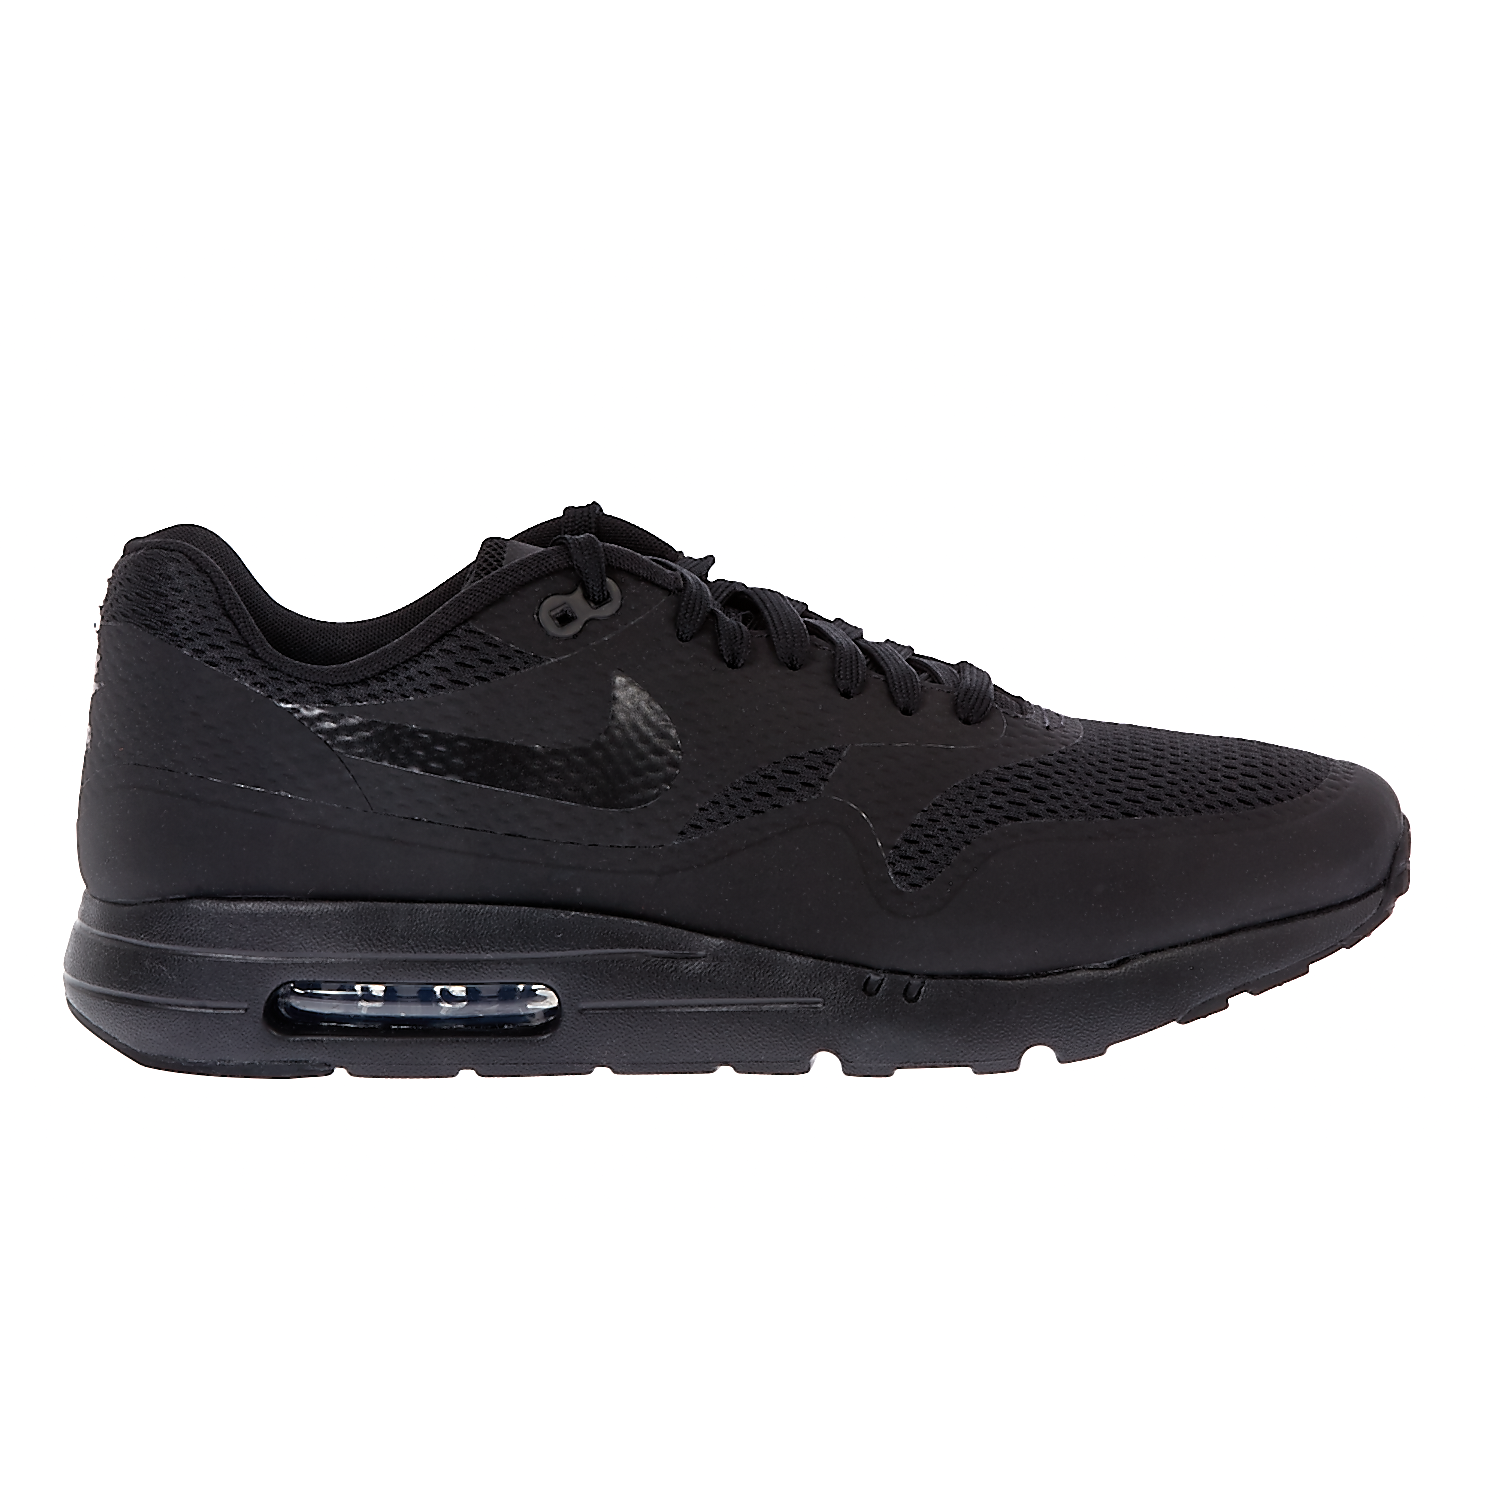 NIKE – Ανδρικά παπούτσια NIKE AIR MAX 1 ULTRA ESSENTIAL μαύρα